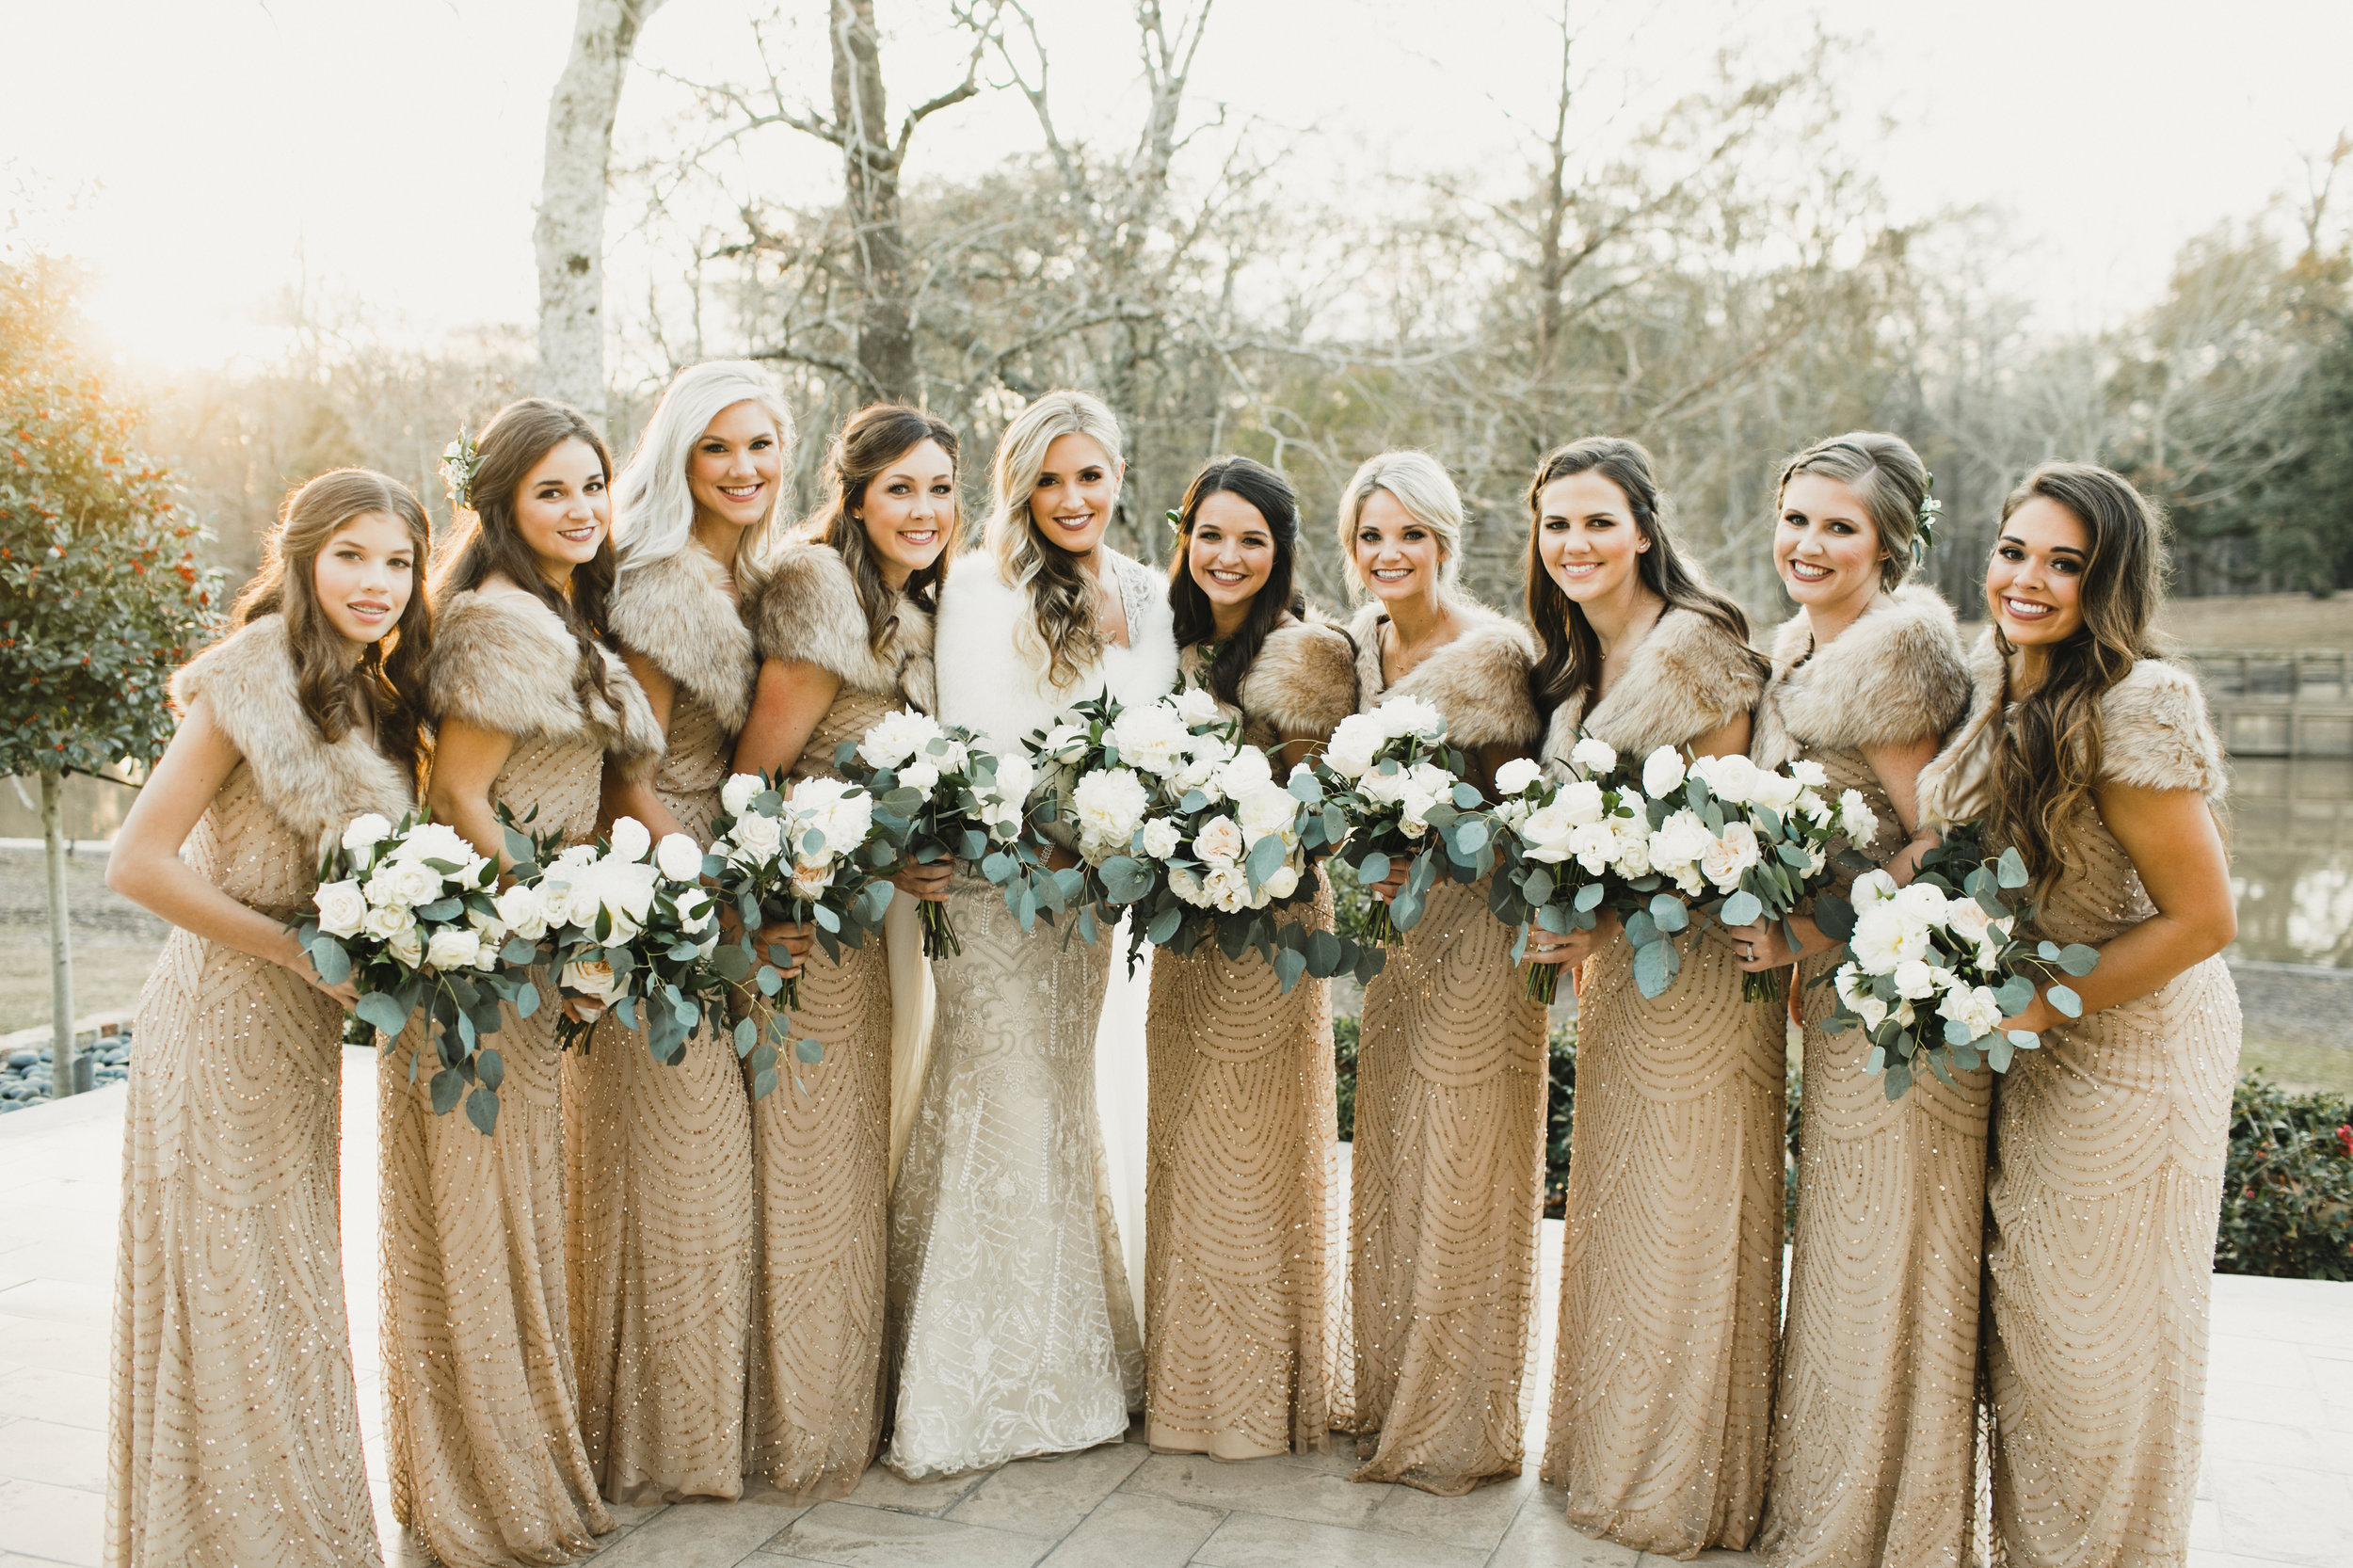 Southern Fete, Southern Wedding, Bride and Bridesmaids, Flowers by Rodney, Salon Elle Rae, Kimbrali Photography